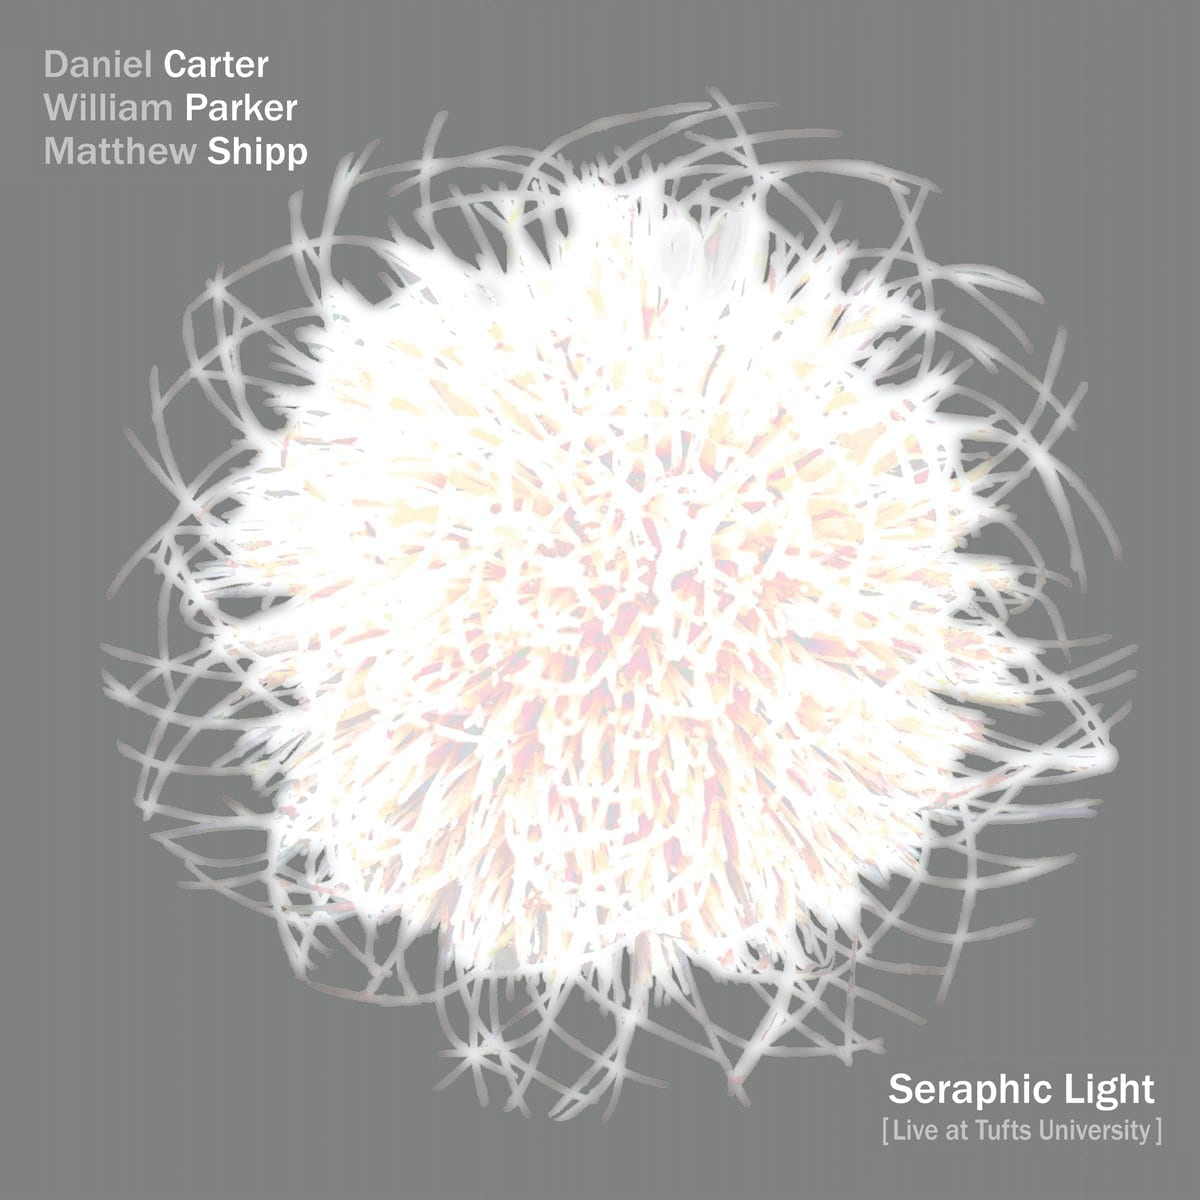 Seraphic Light (Live at Tufts University)